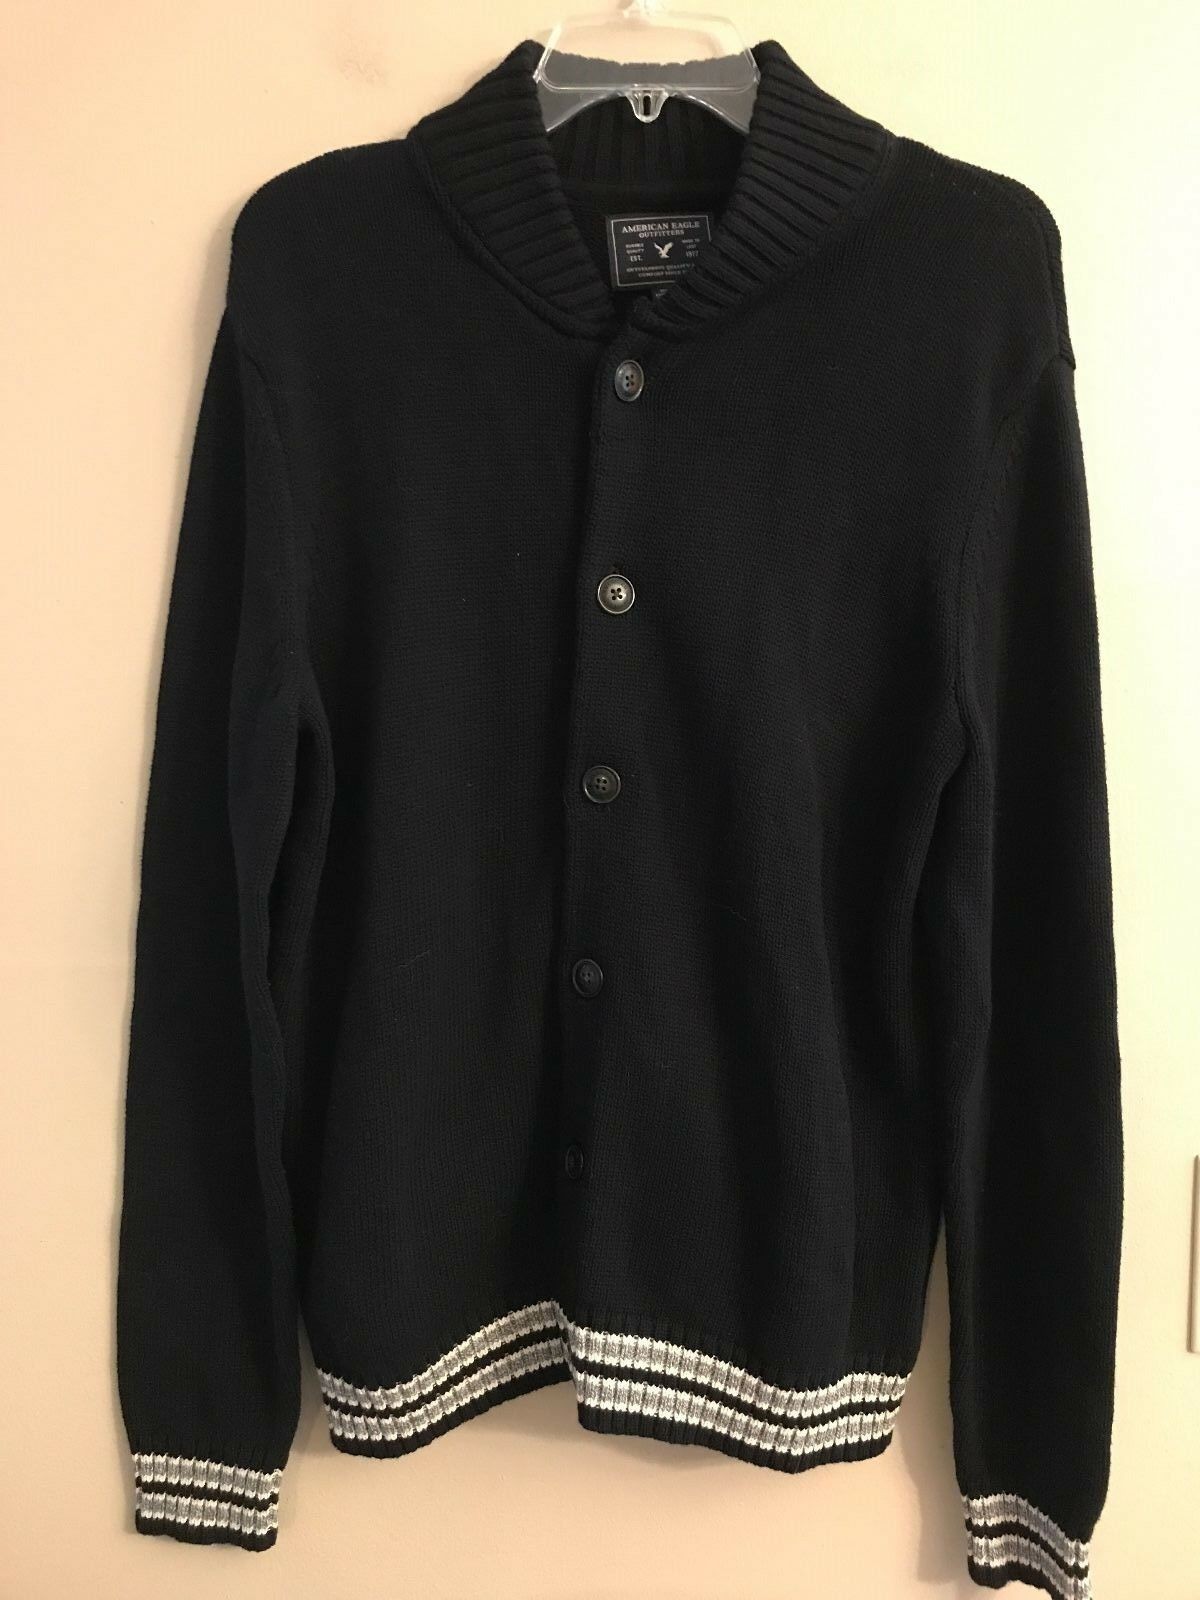 NWT AMERICAN EAGLE Men's Bomber Cardigan Sweater Navy bluee M L XL Available